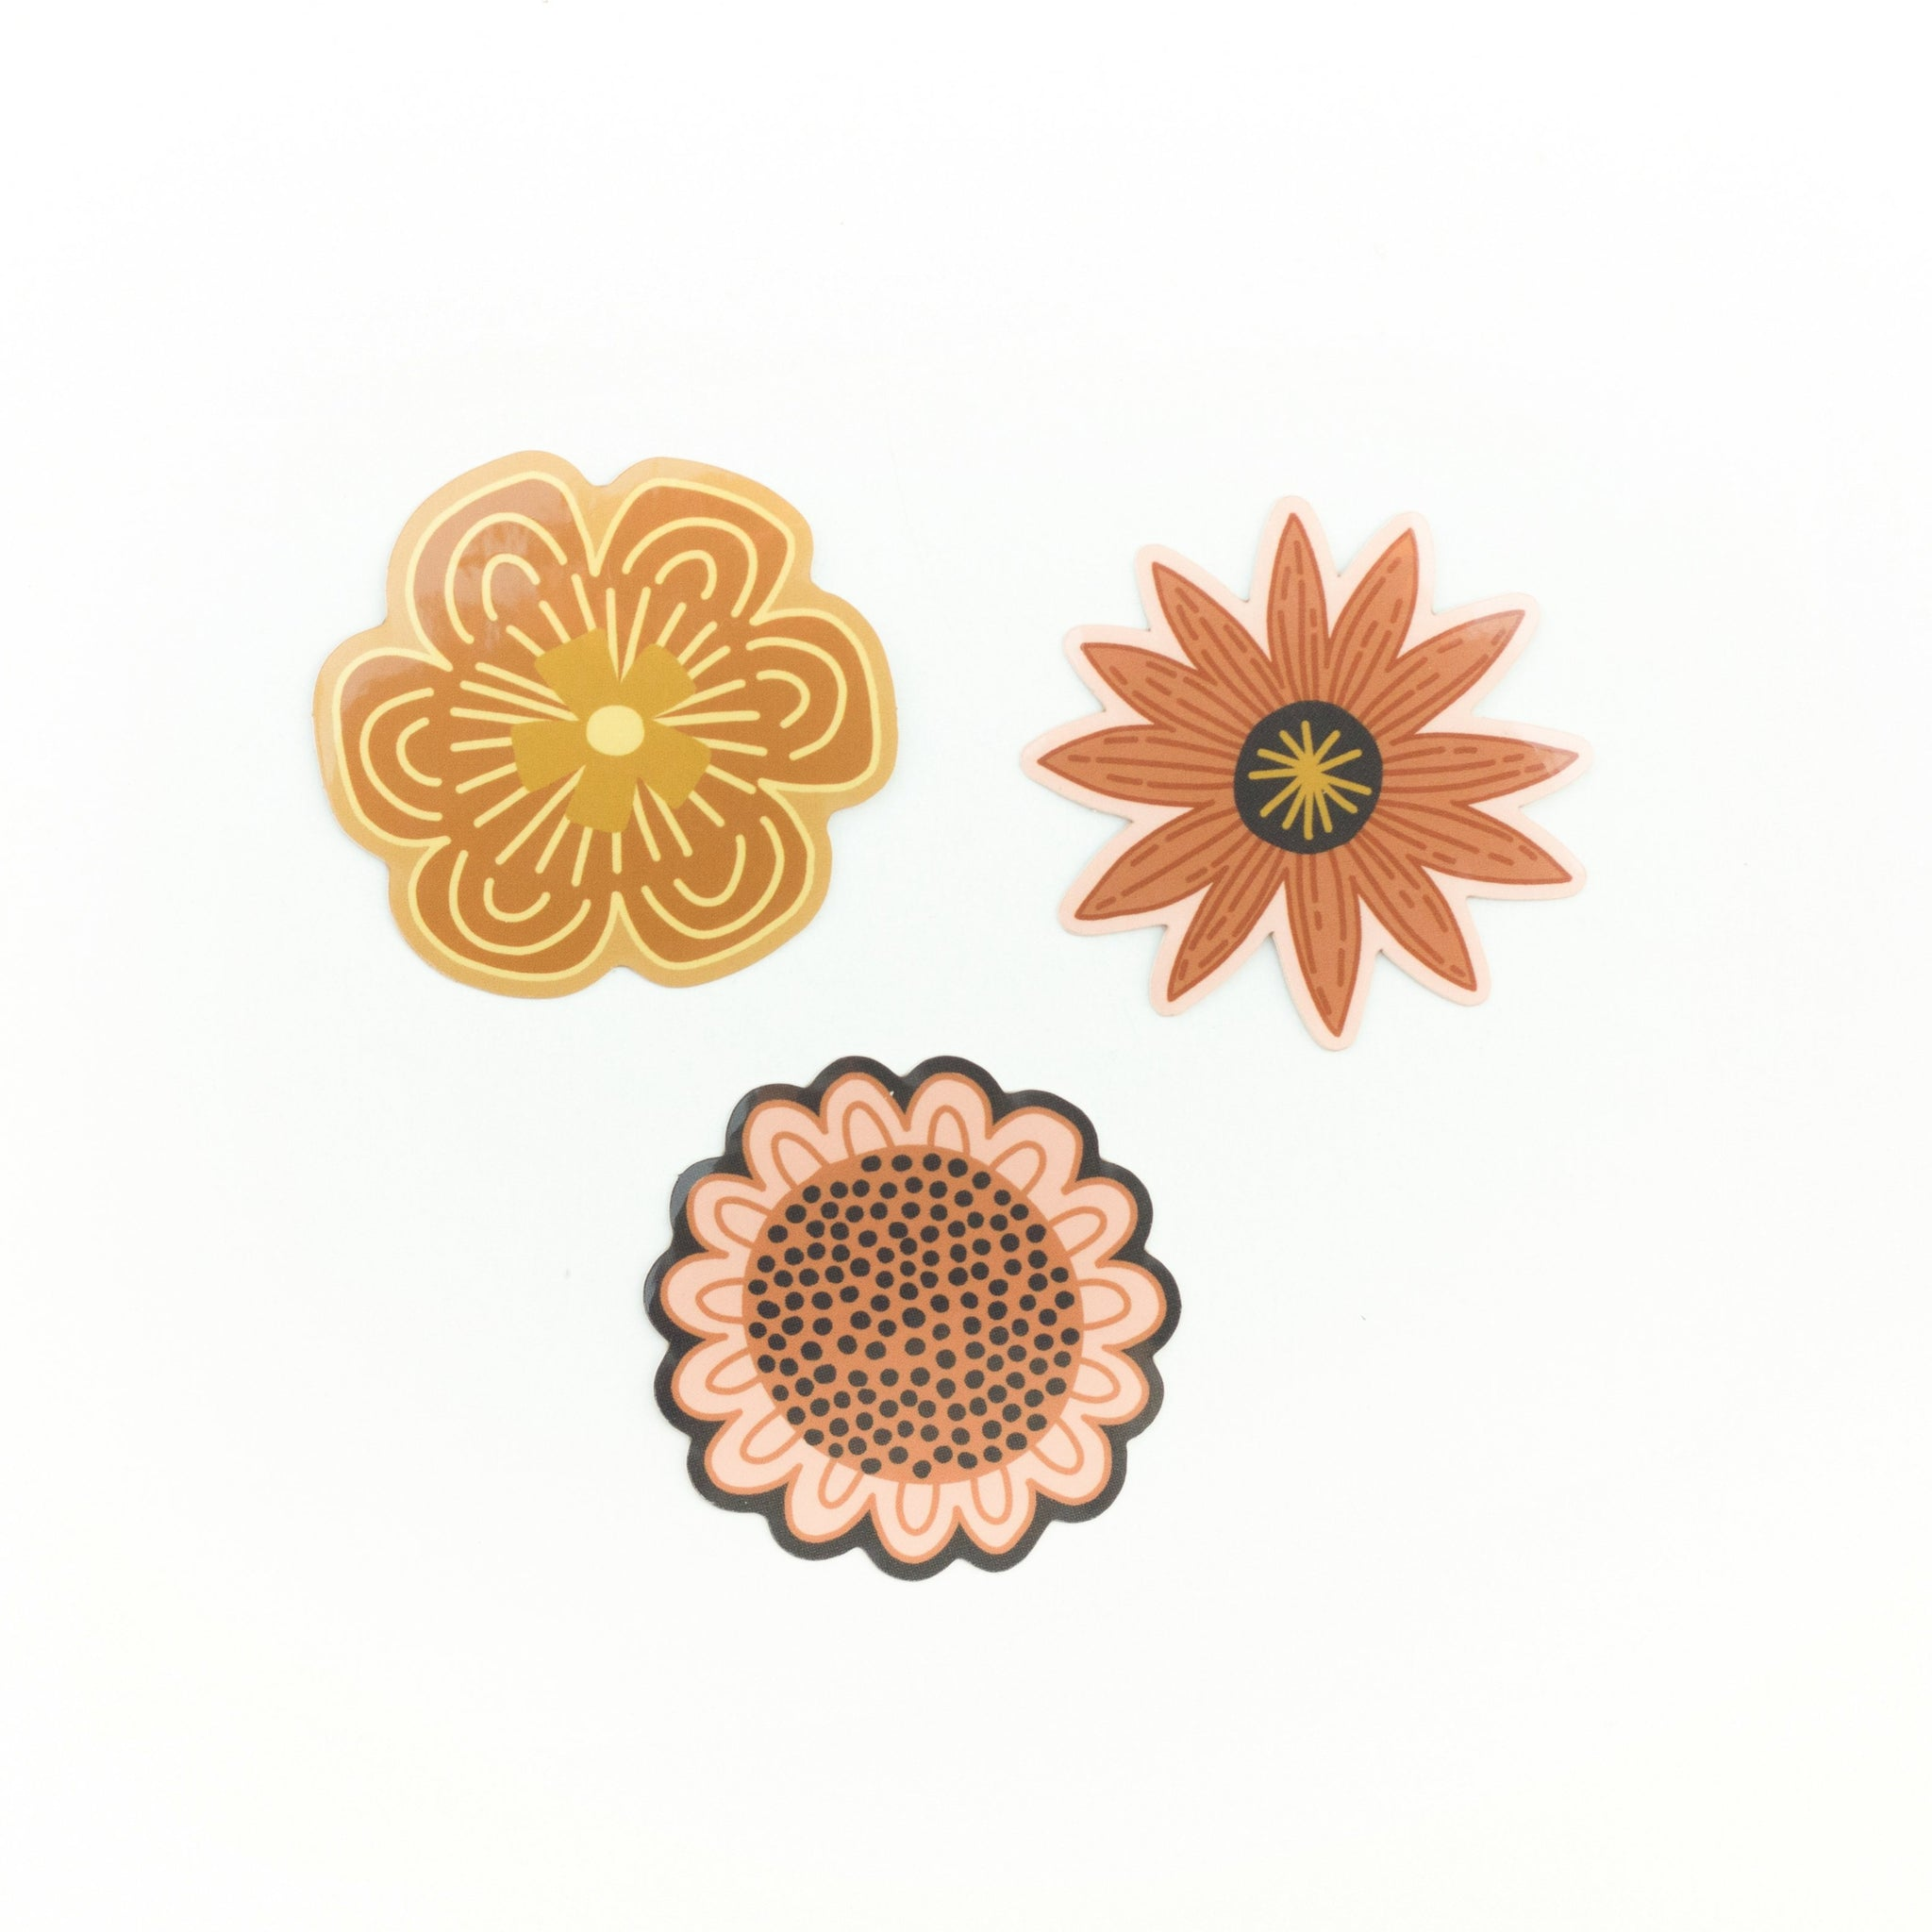 Wild flower sticker pack